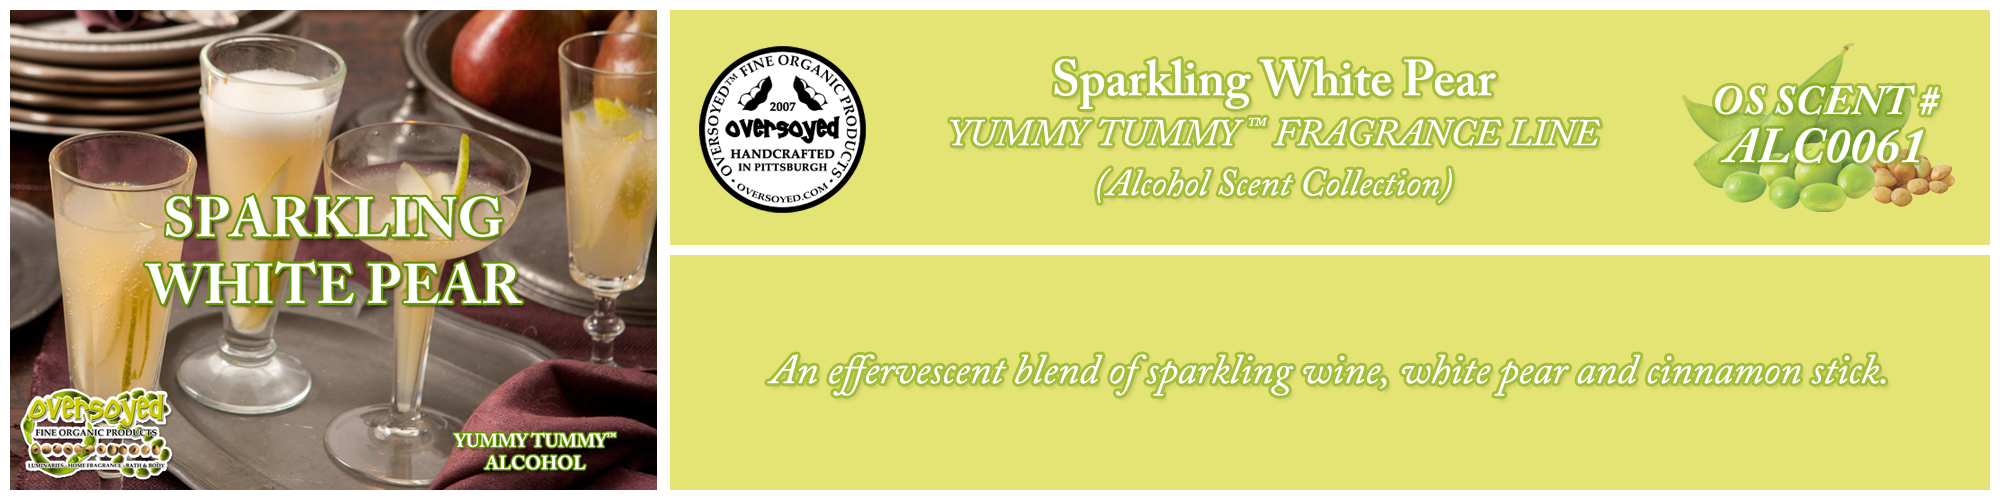 Sparkling White Pear Handcrafted Products Collection